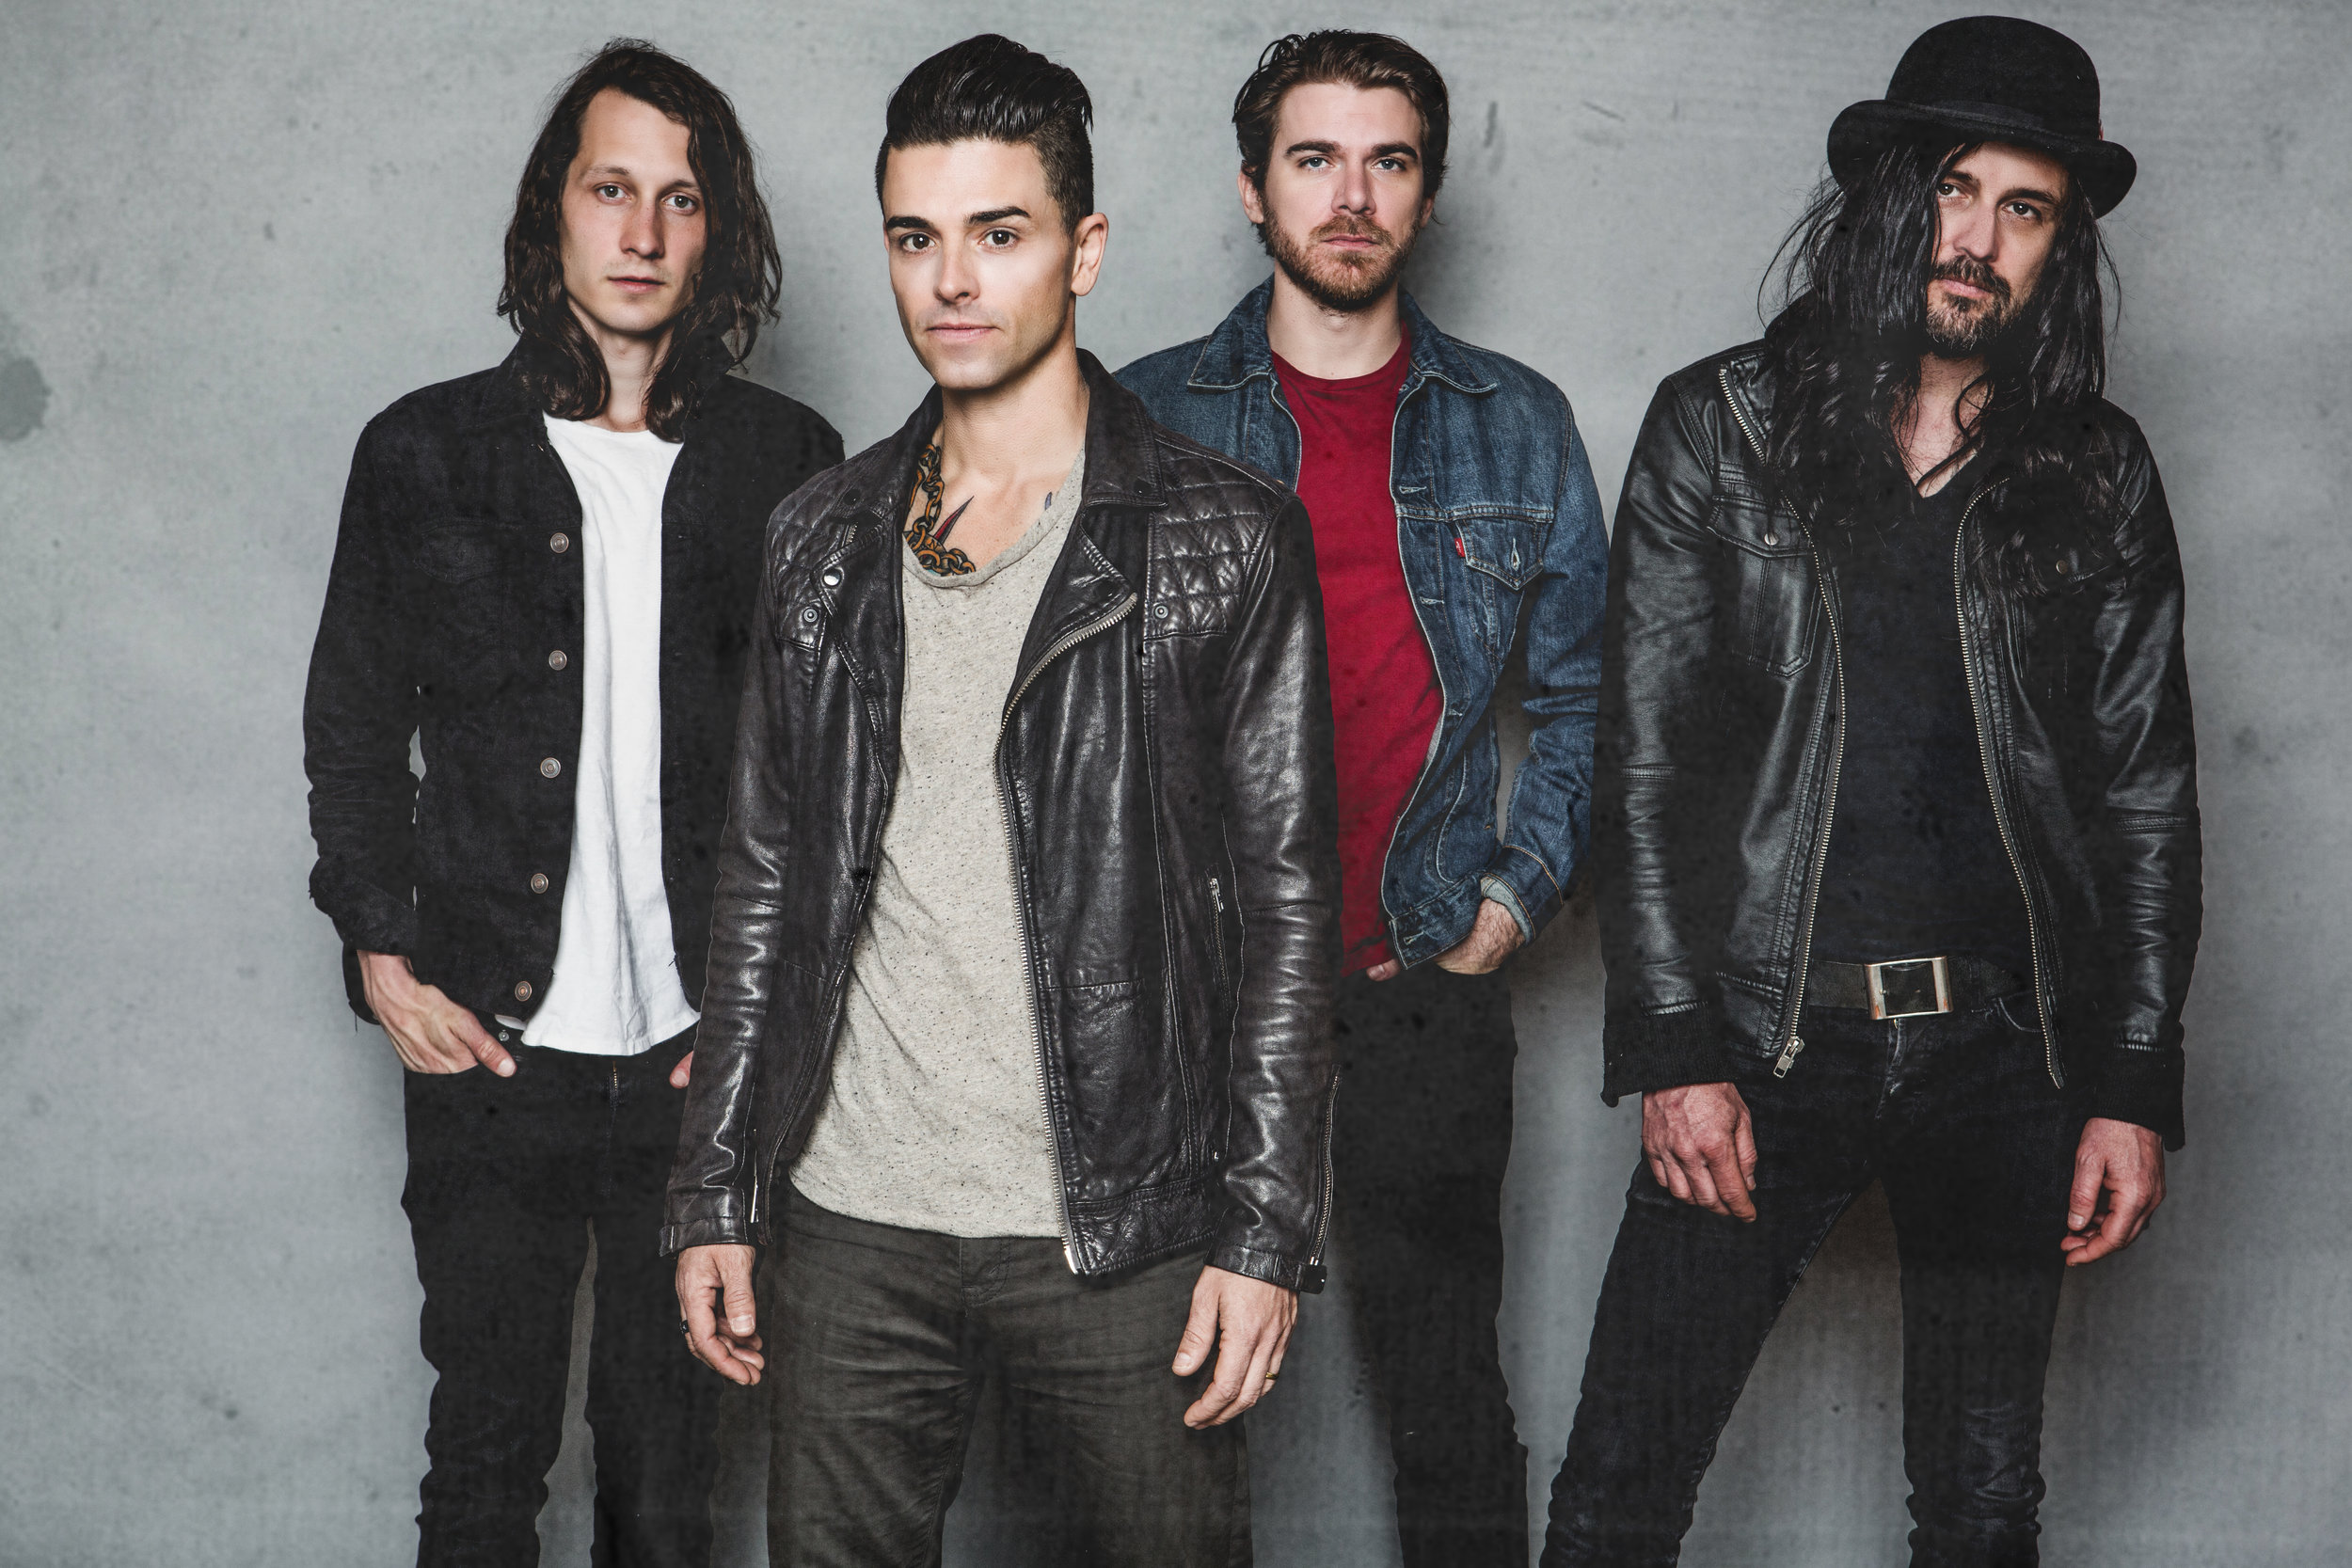 Alternative rock band Dashboard Confessional will perform July 30 at the Sands Bethlehem Event Center in Bethlehem.  (Courtesy Photo)